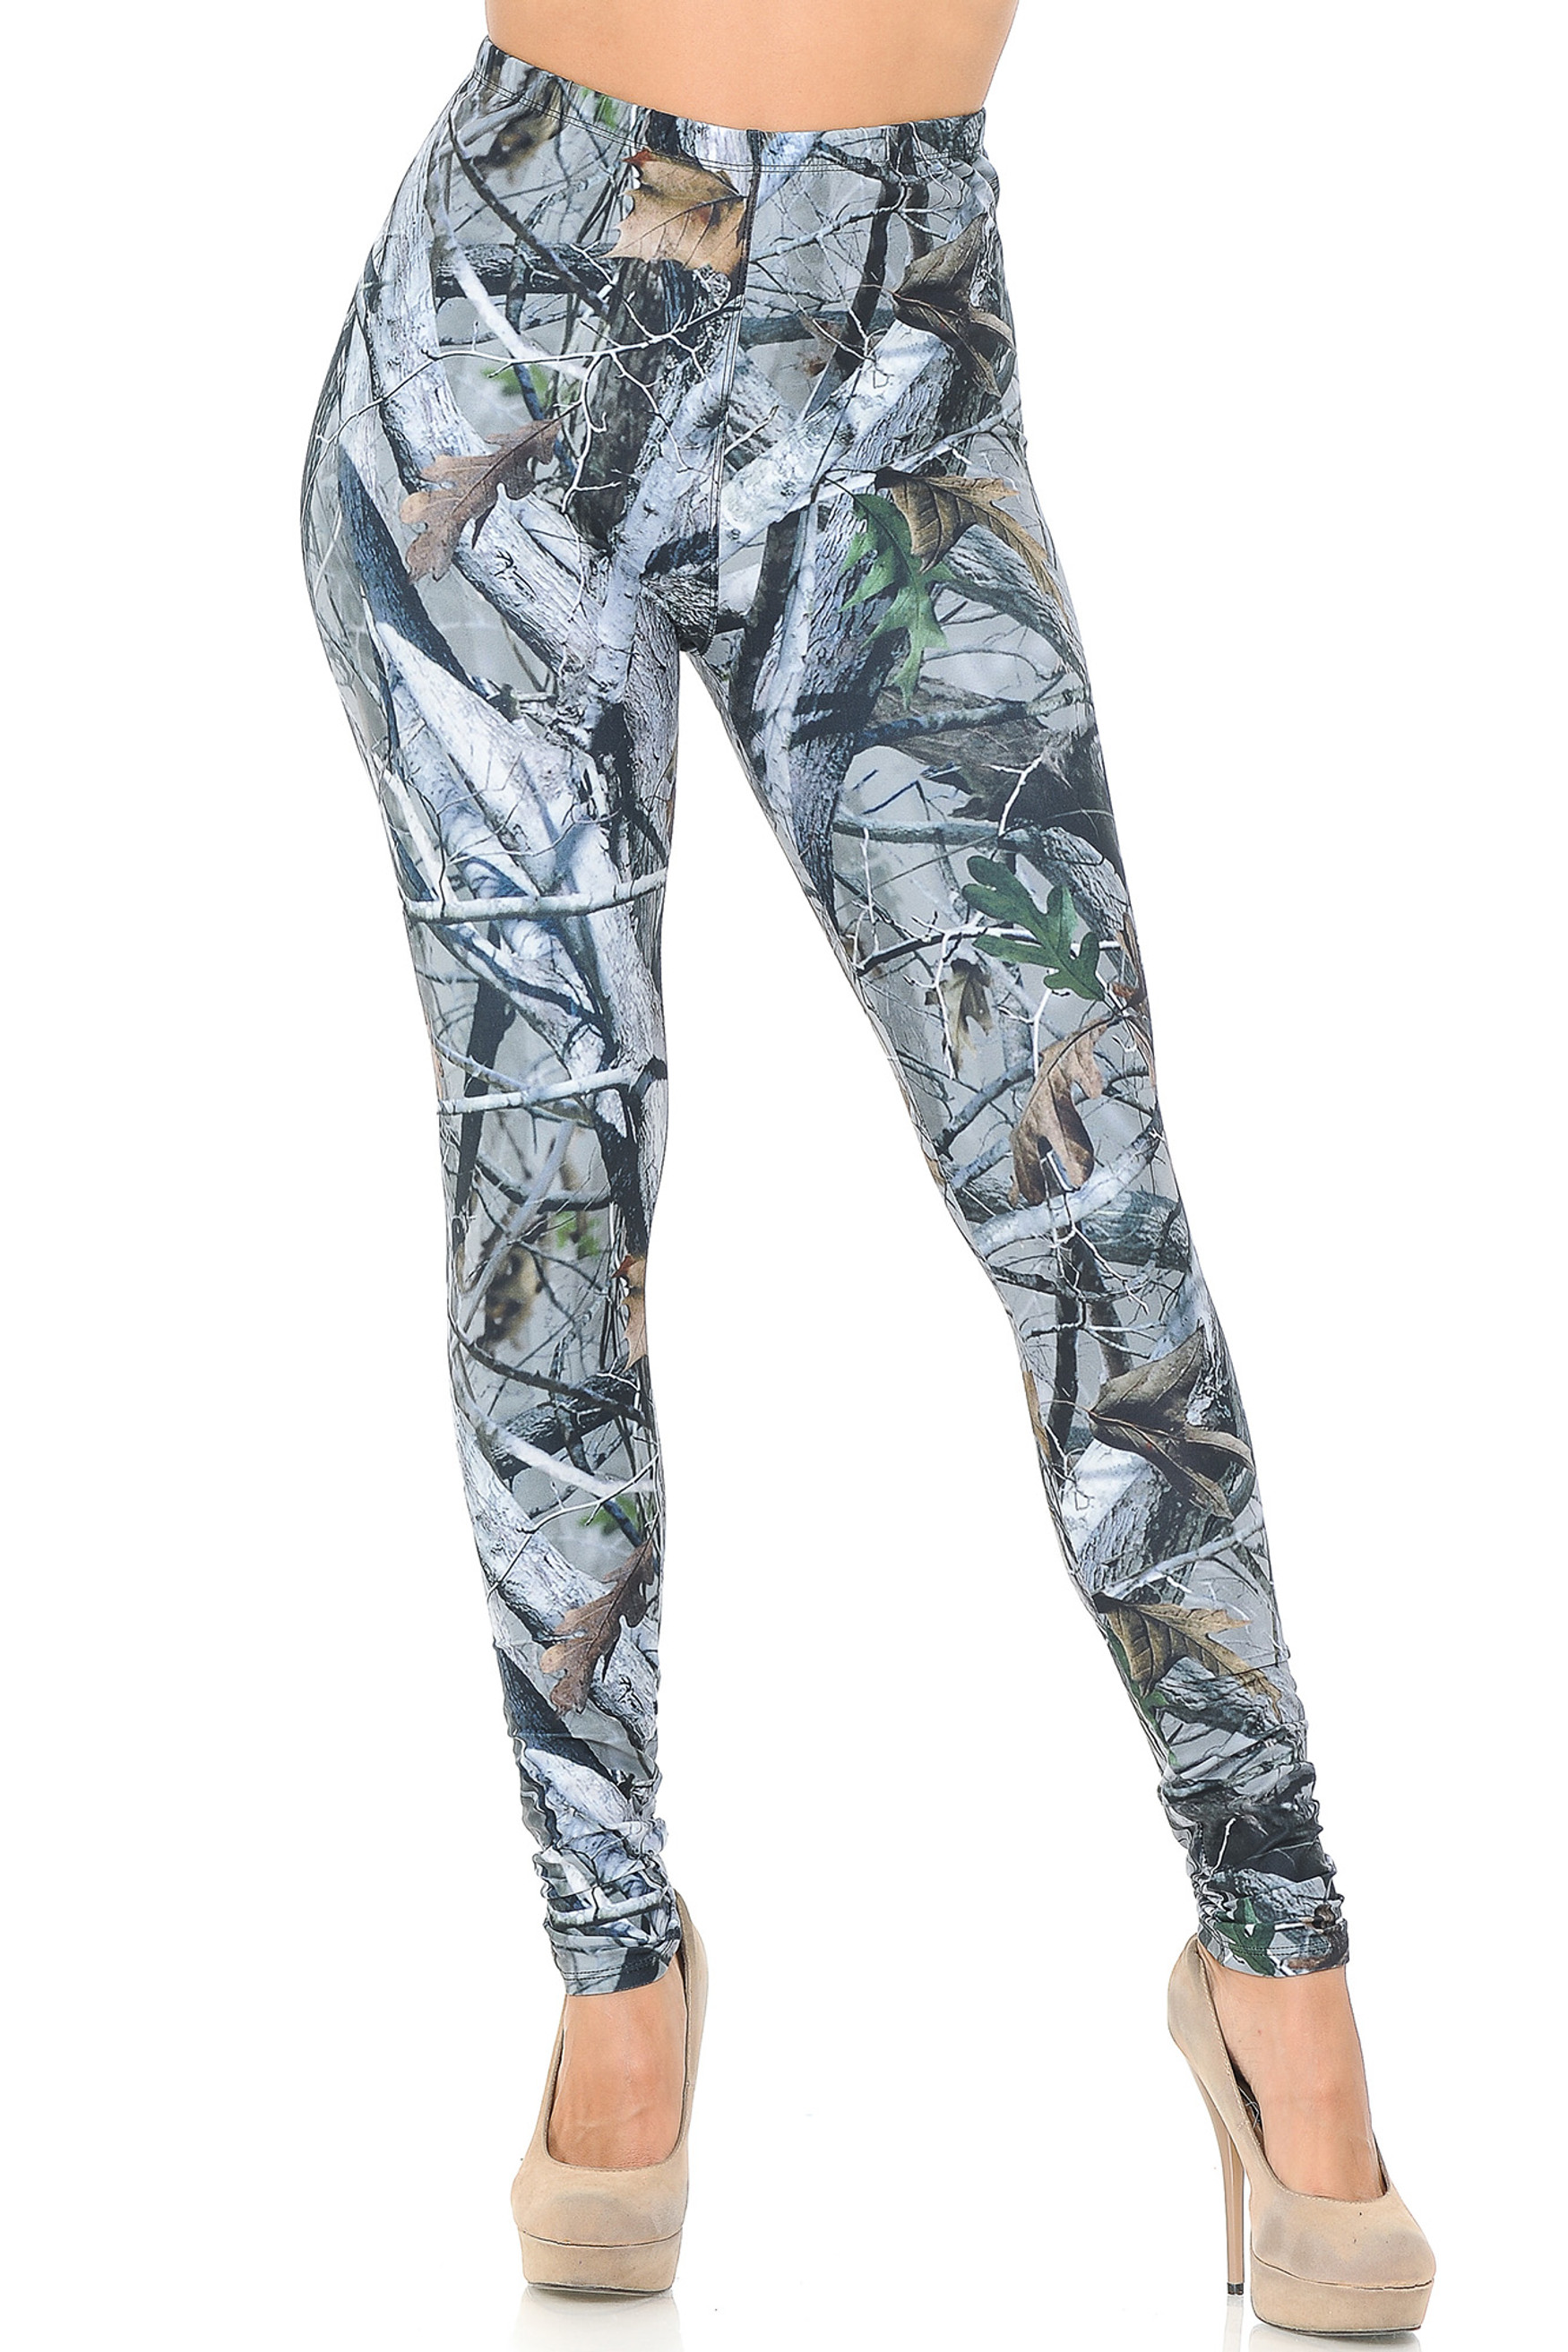 Creamy Soft Camouflage Trees Leggings - USA Fashion™